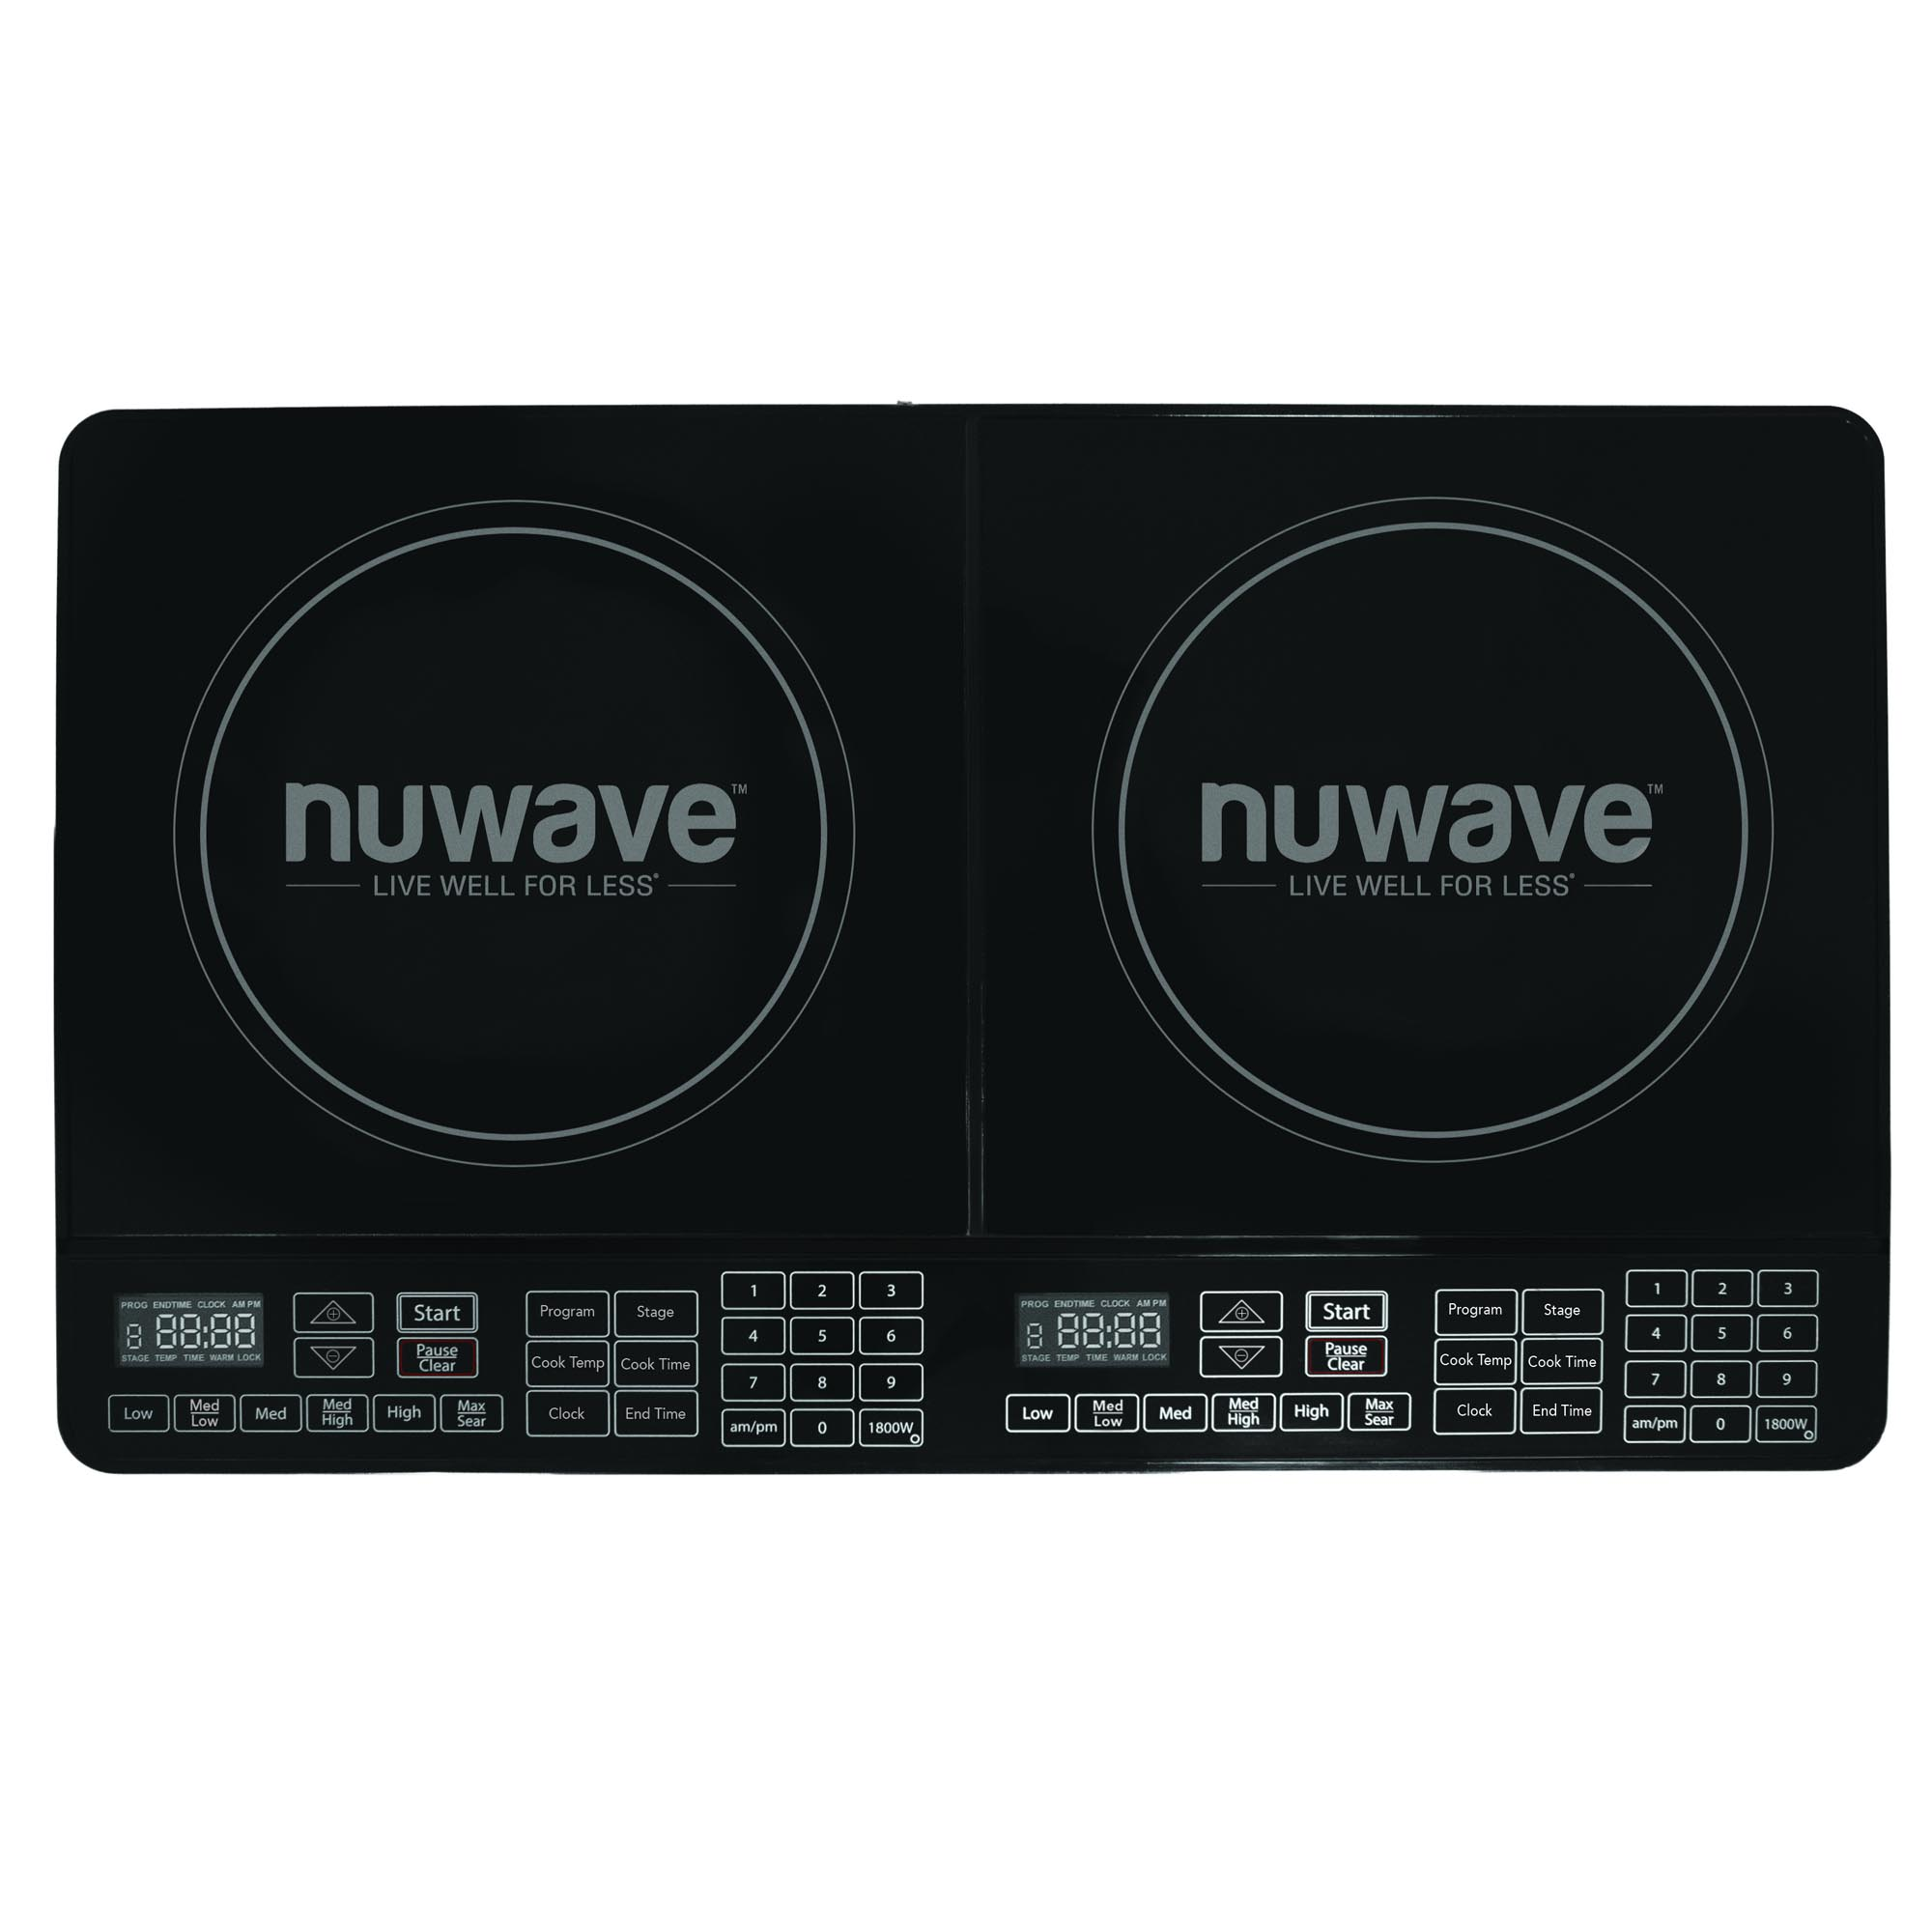 Fagor 1800w portable induction cooker 670041900 price tracking - Nuwave Double Precision Induction Cooktop Burner Price